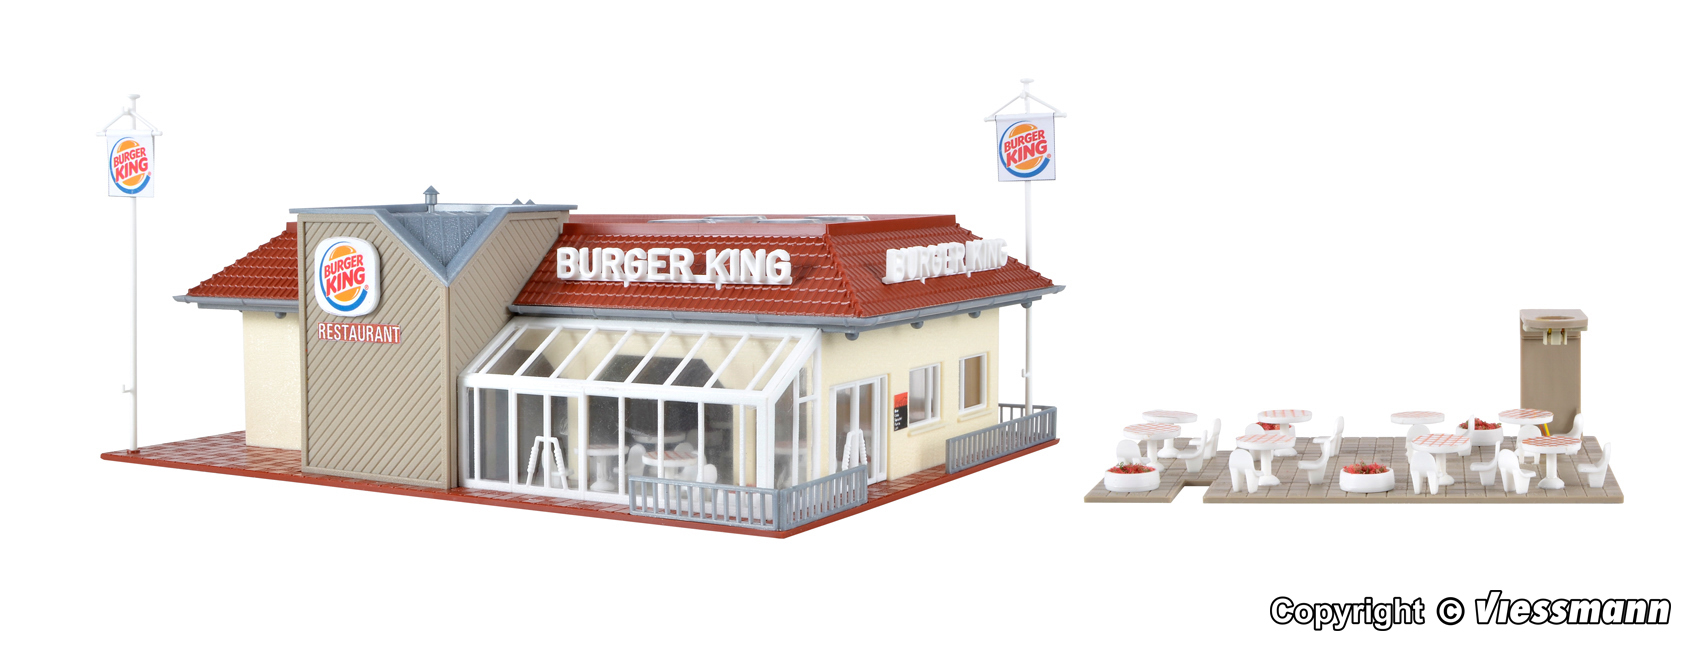 43632 H0 Burger King fast food restaurant with interior and LED lighting,  functional kit